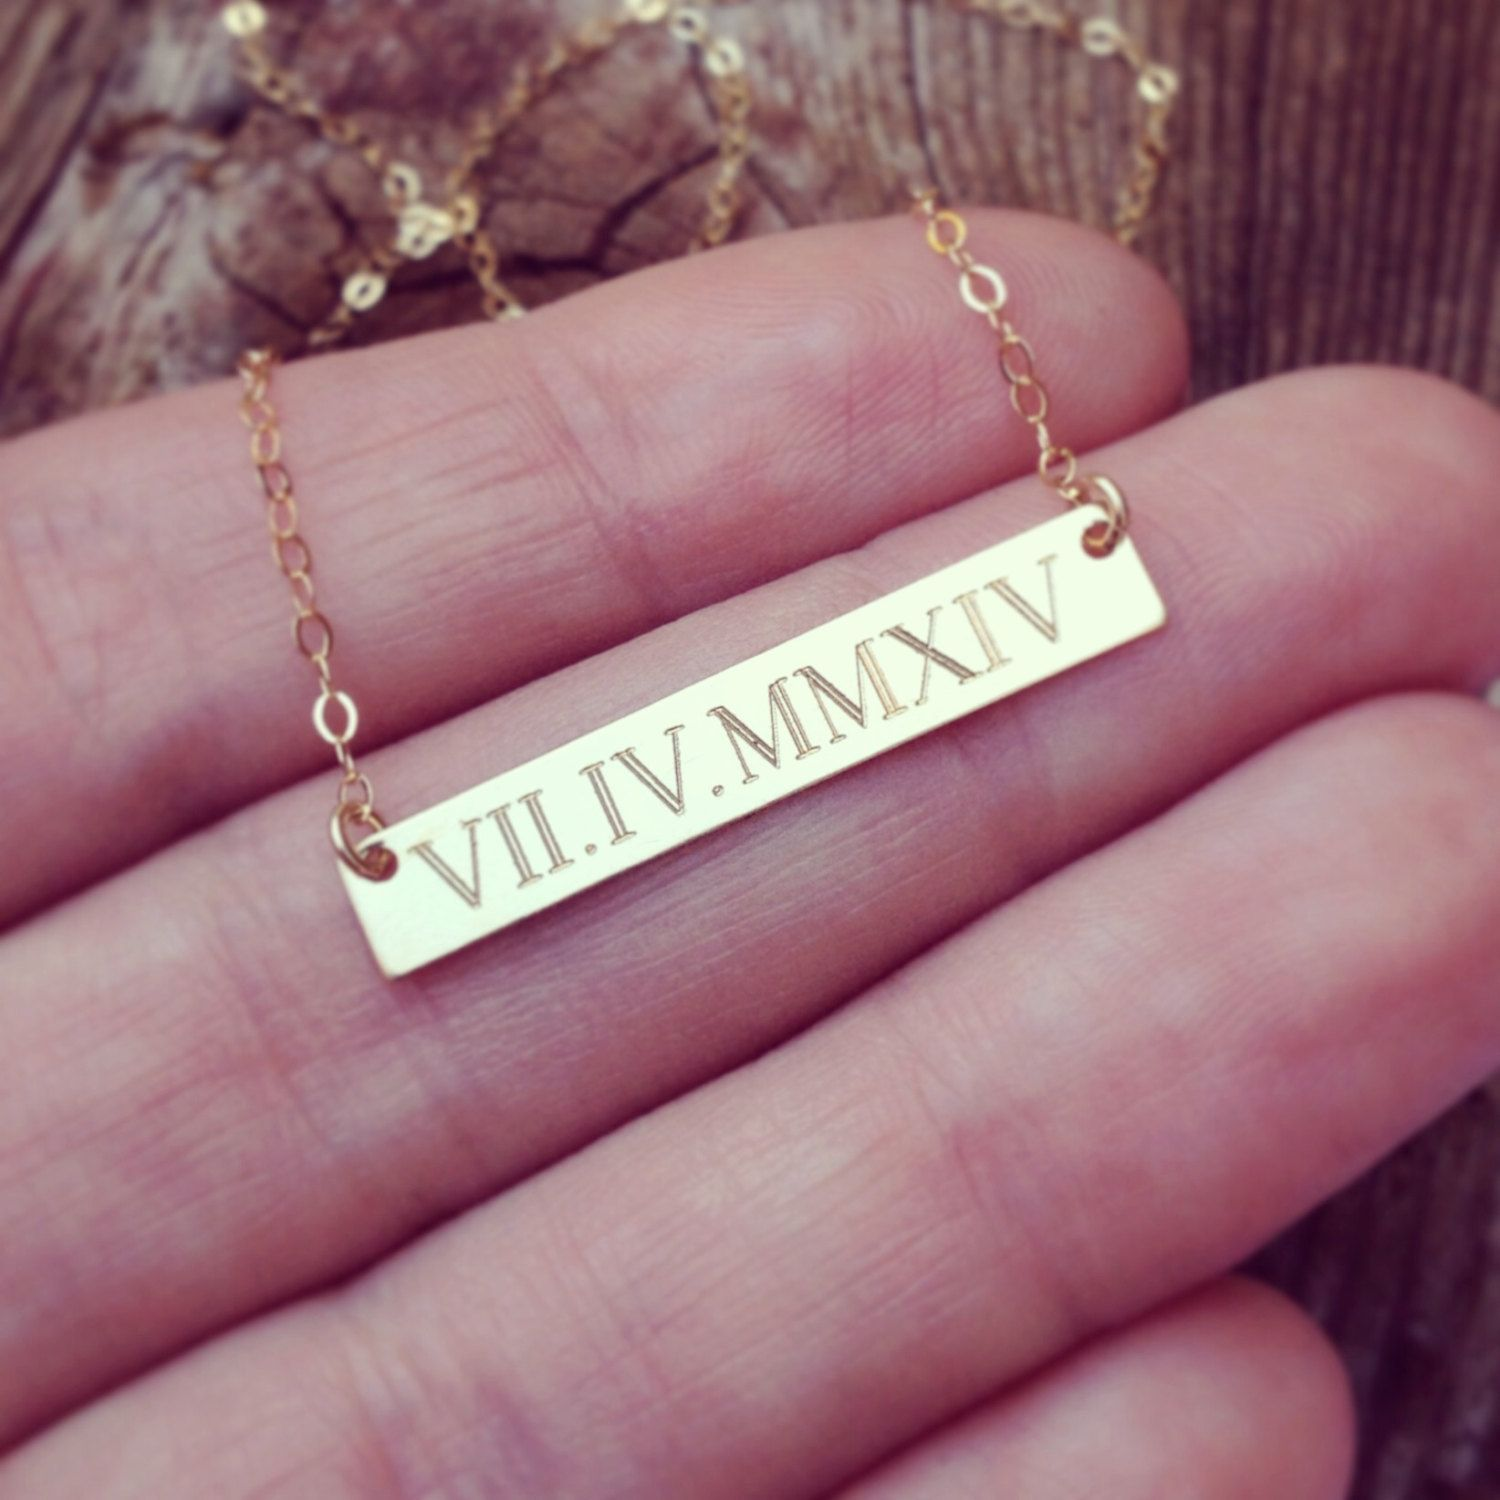 Roman Numeral Necklace Date Necklace Custom Roman